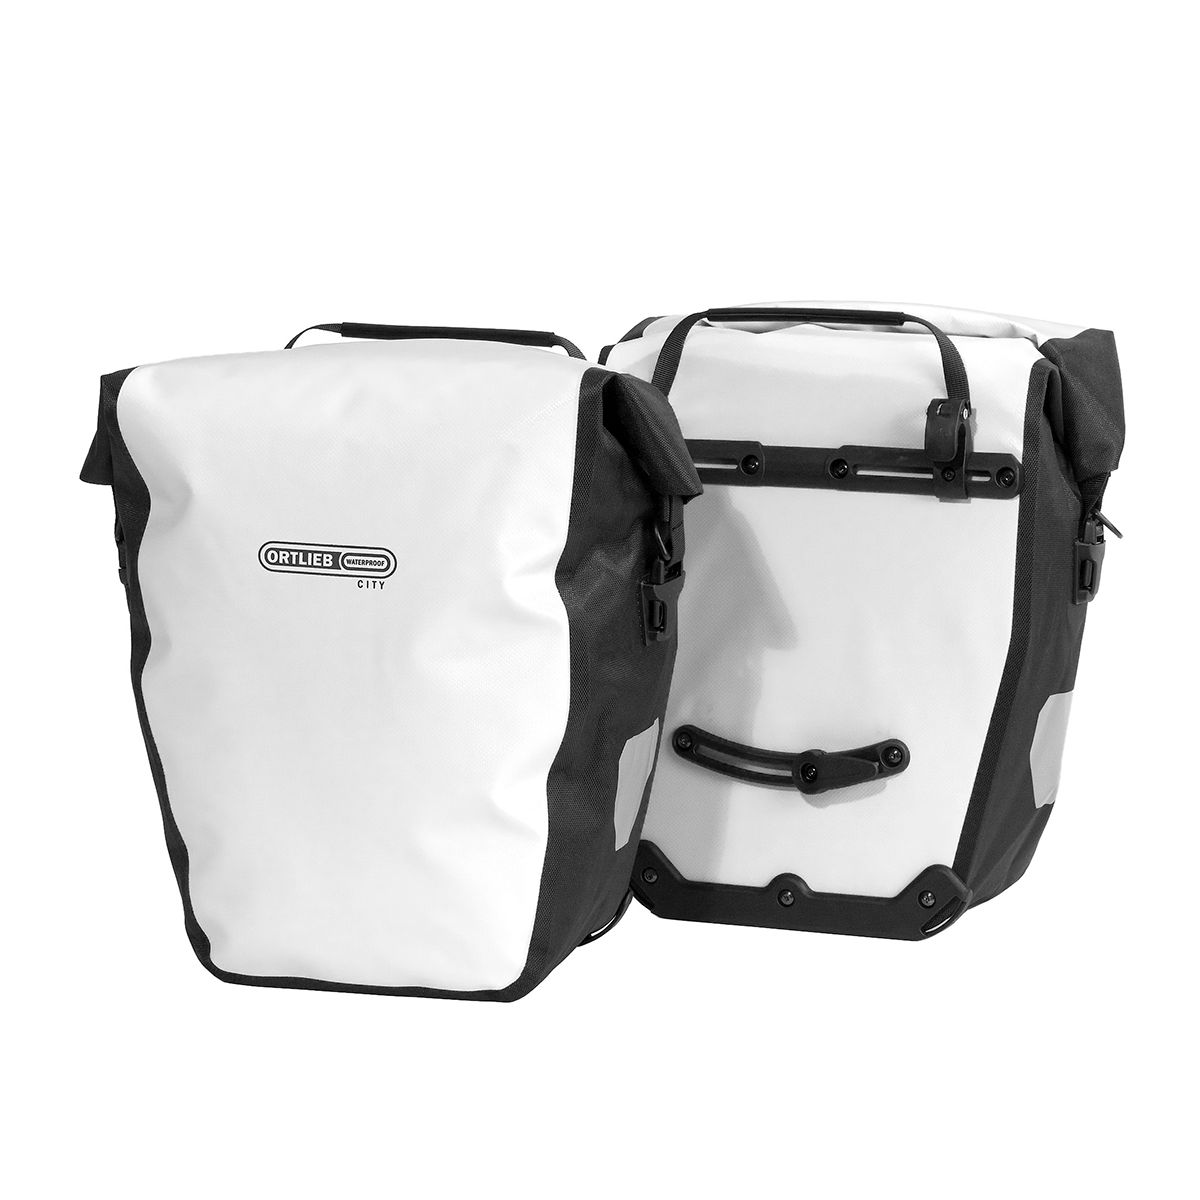 Back Roller City set of two pannier bags